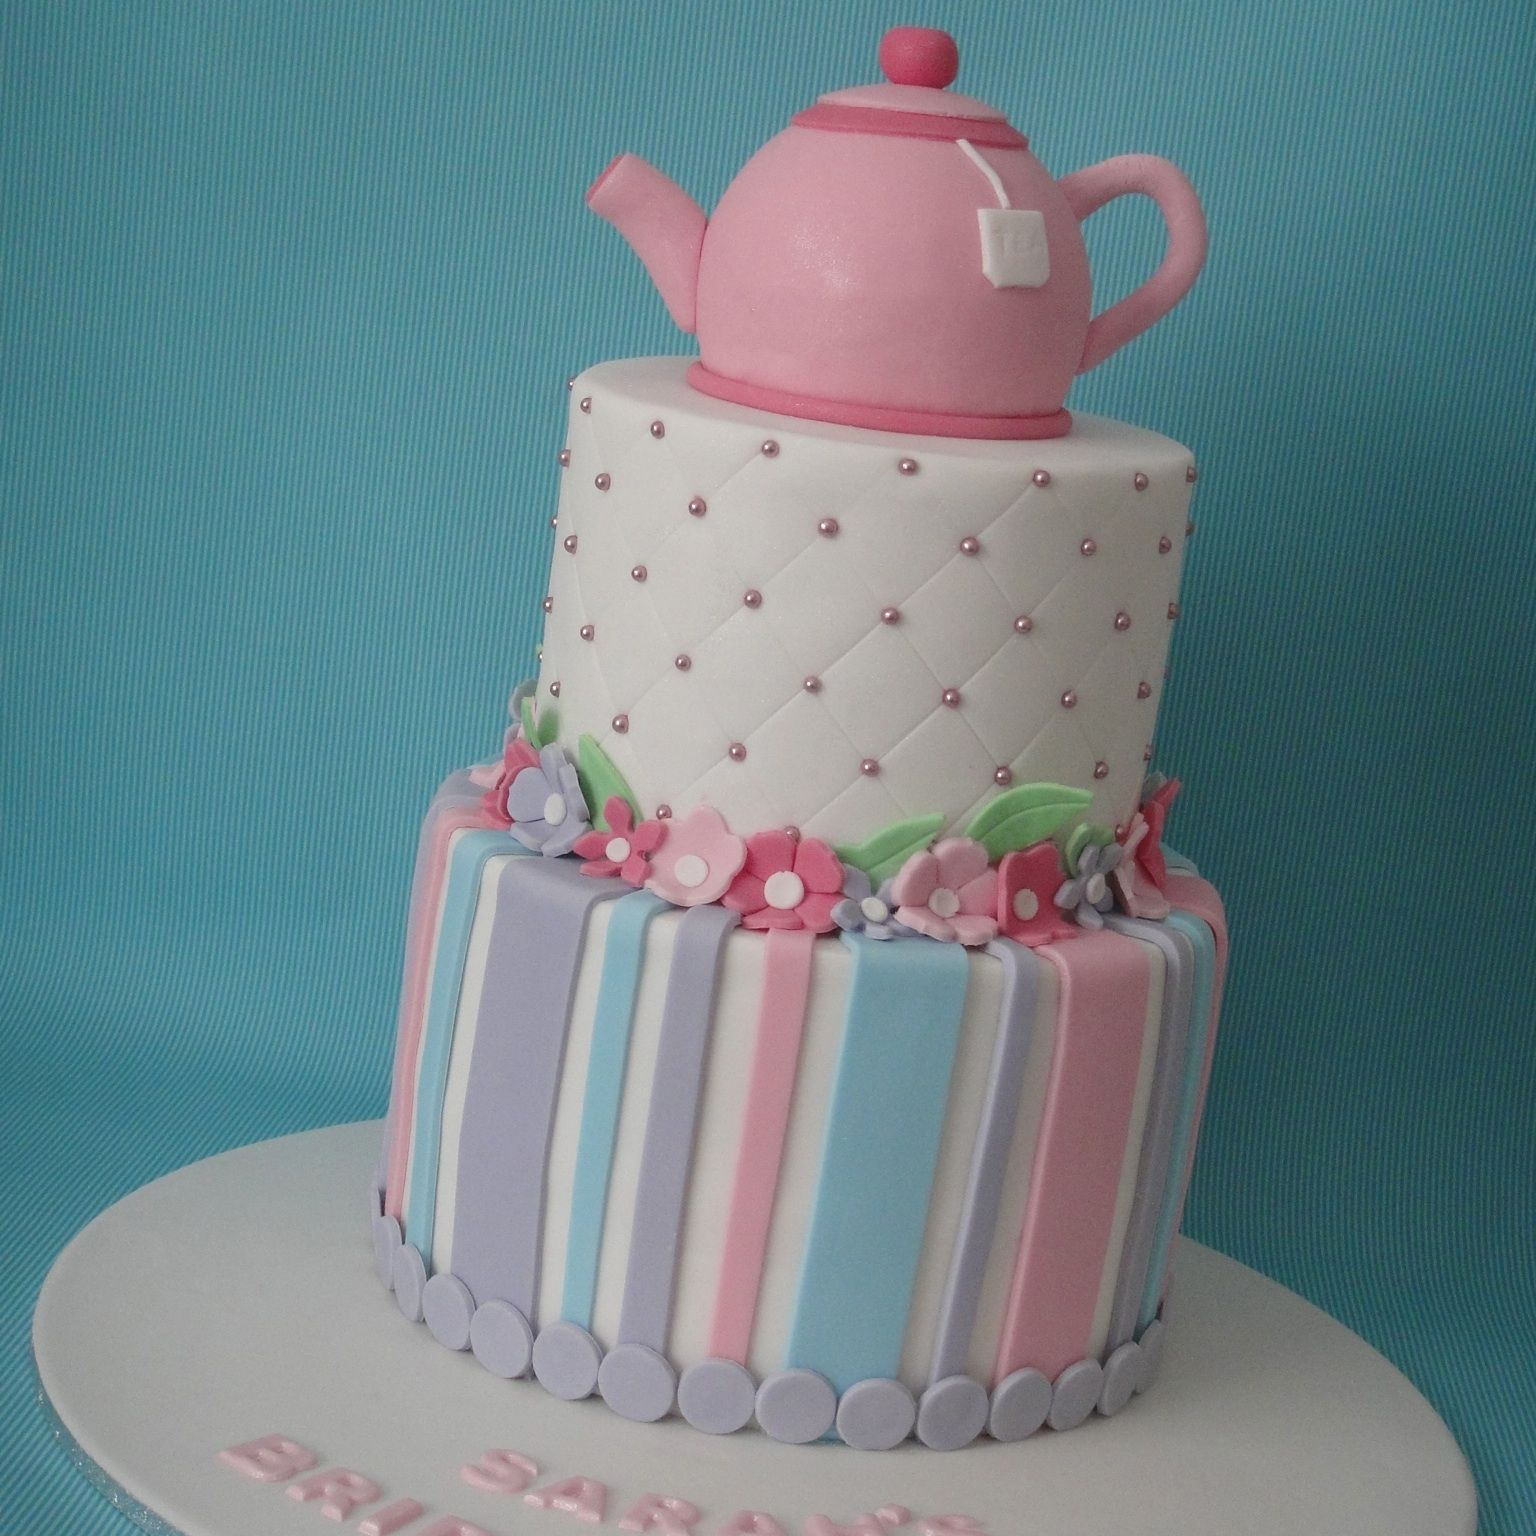 Bridal shower/kitchen tea cake | Cakes and decorations | Pinterest ...